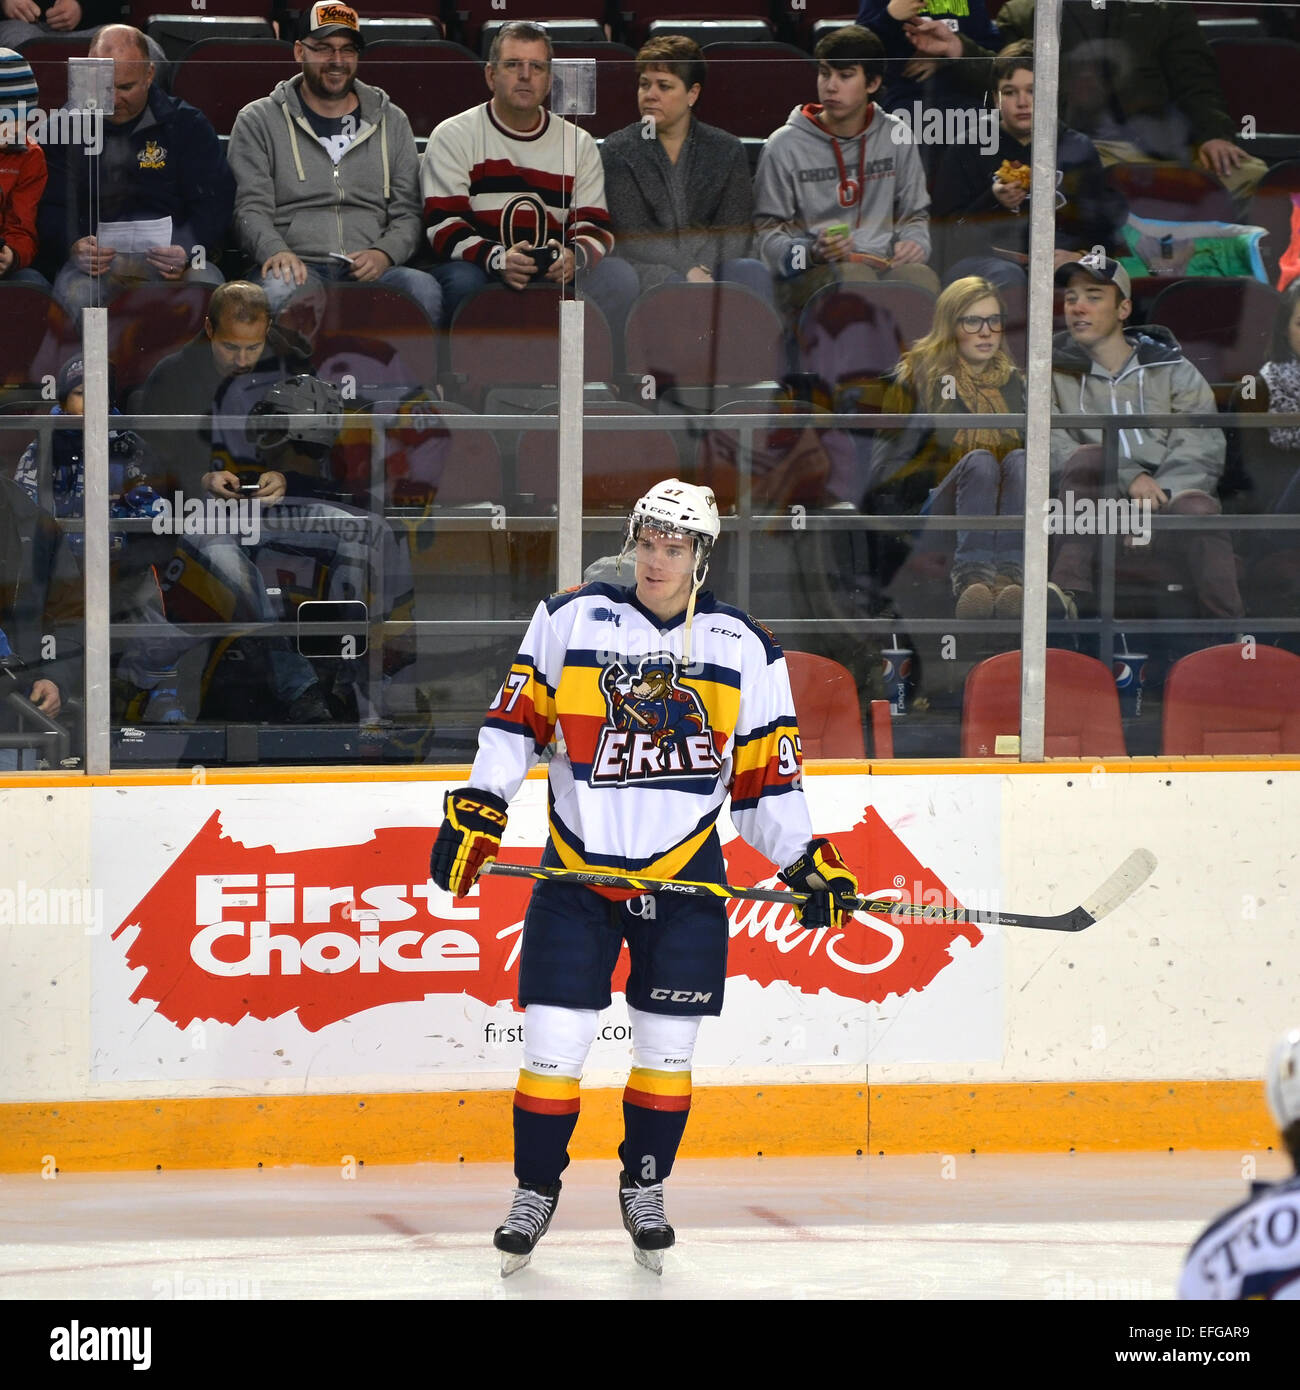 Connor McDavid of the Erie Otters in the warm-up before their Ontario Hockey League (junior) game.  McDavid is the - Stock Image